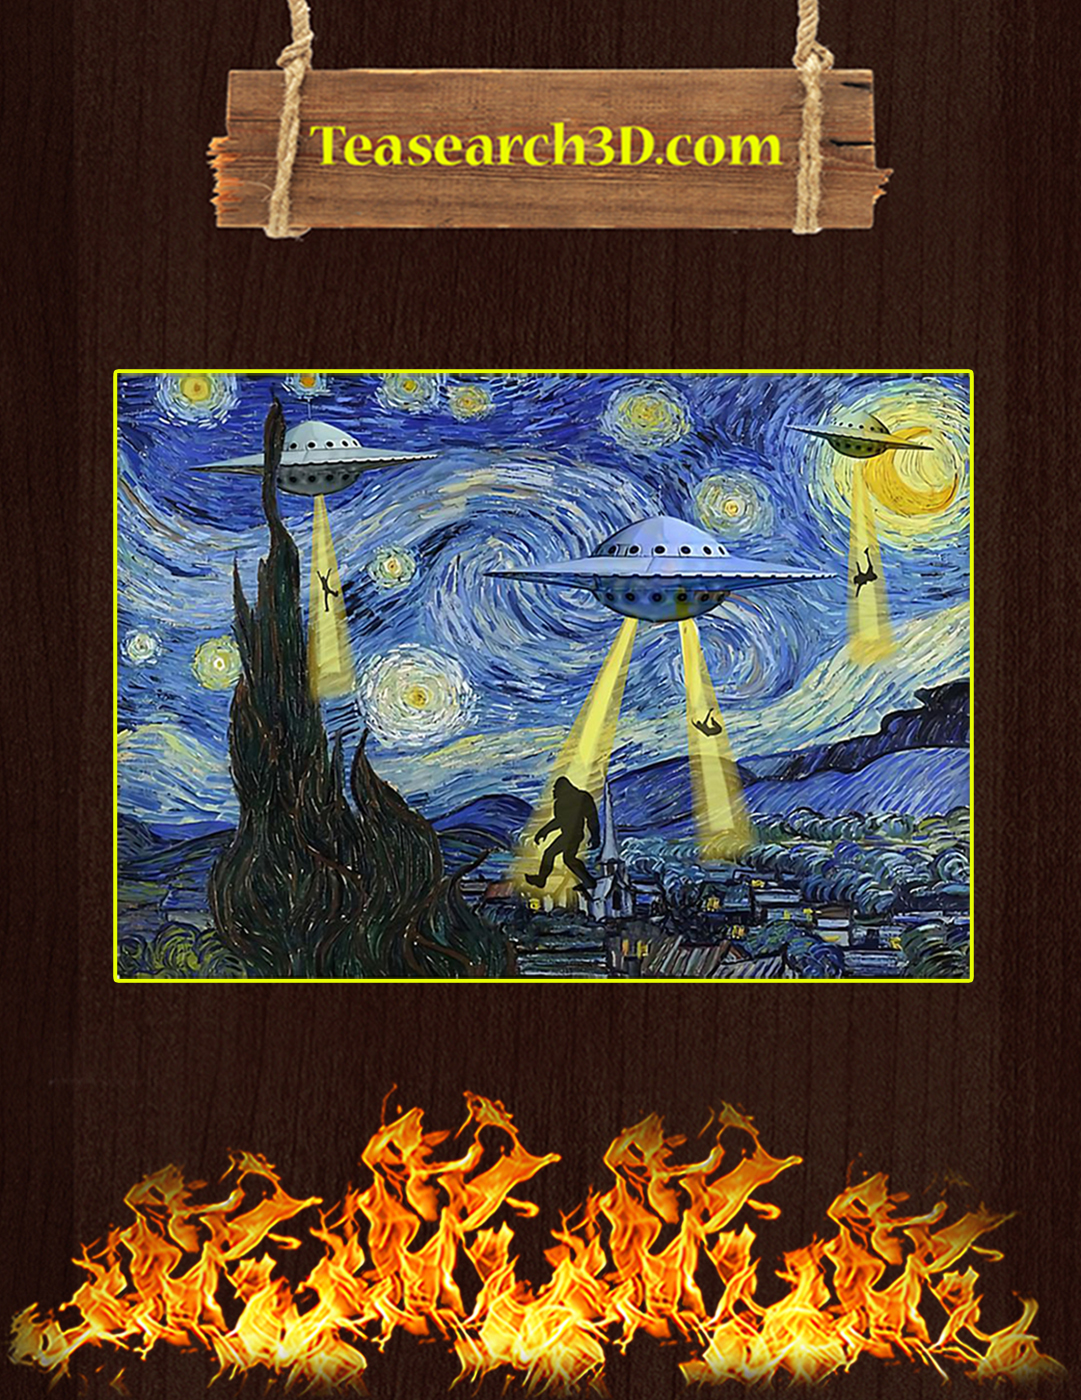 Ufo sighting starry night van gogh poster A2